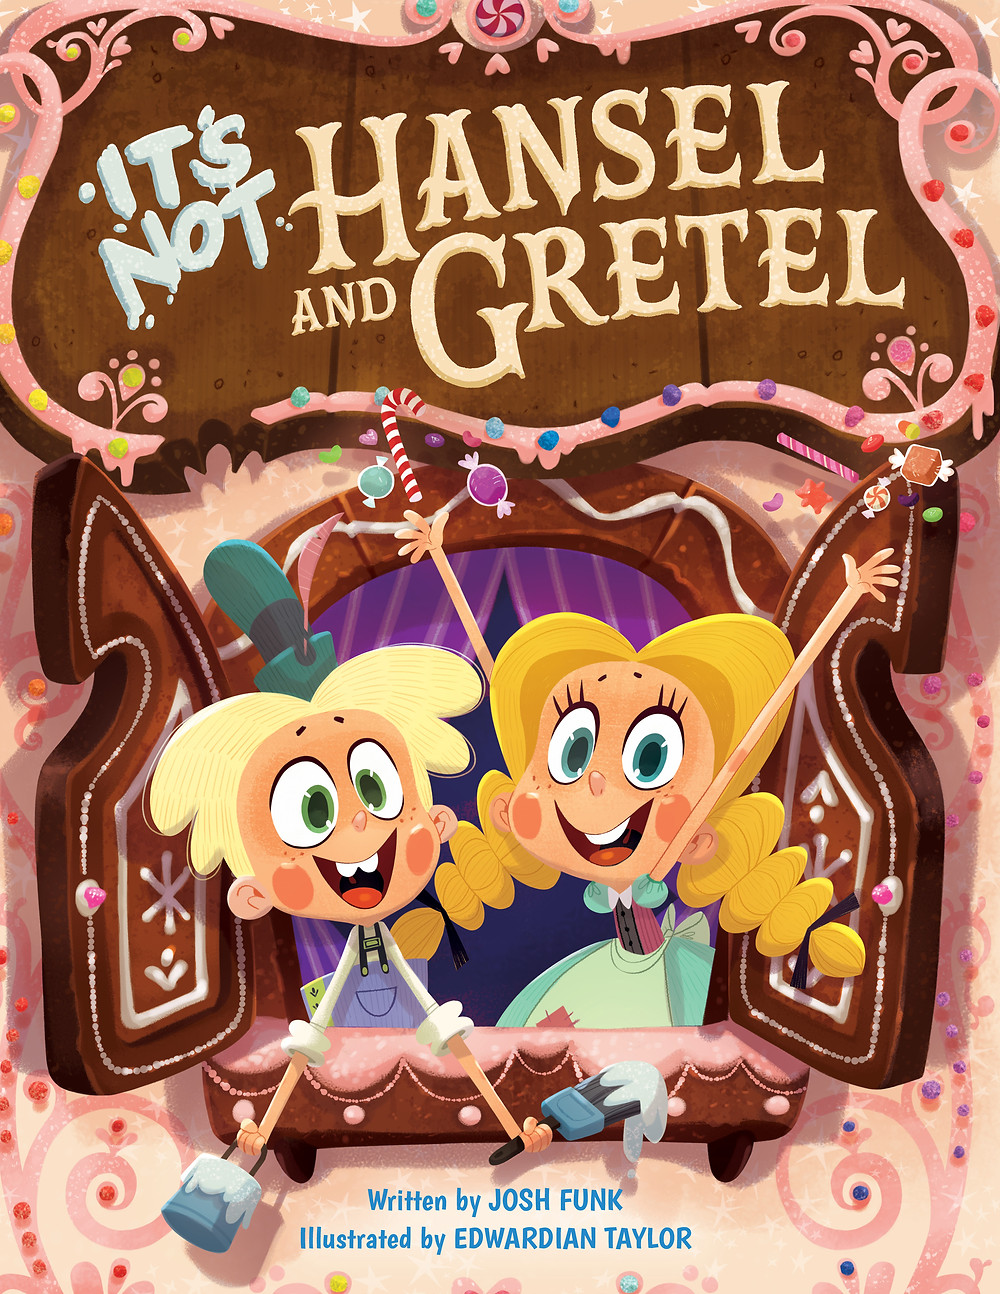 _It's Not Hansel and Gretel